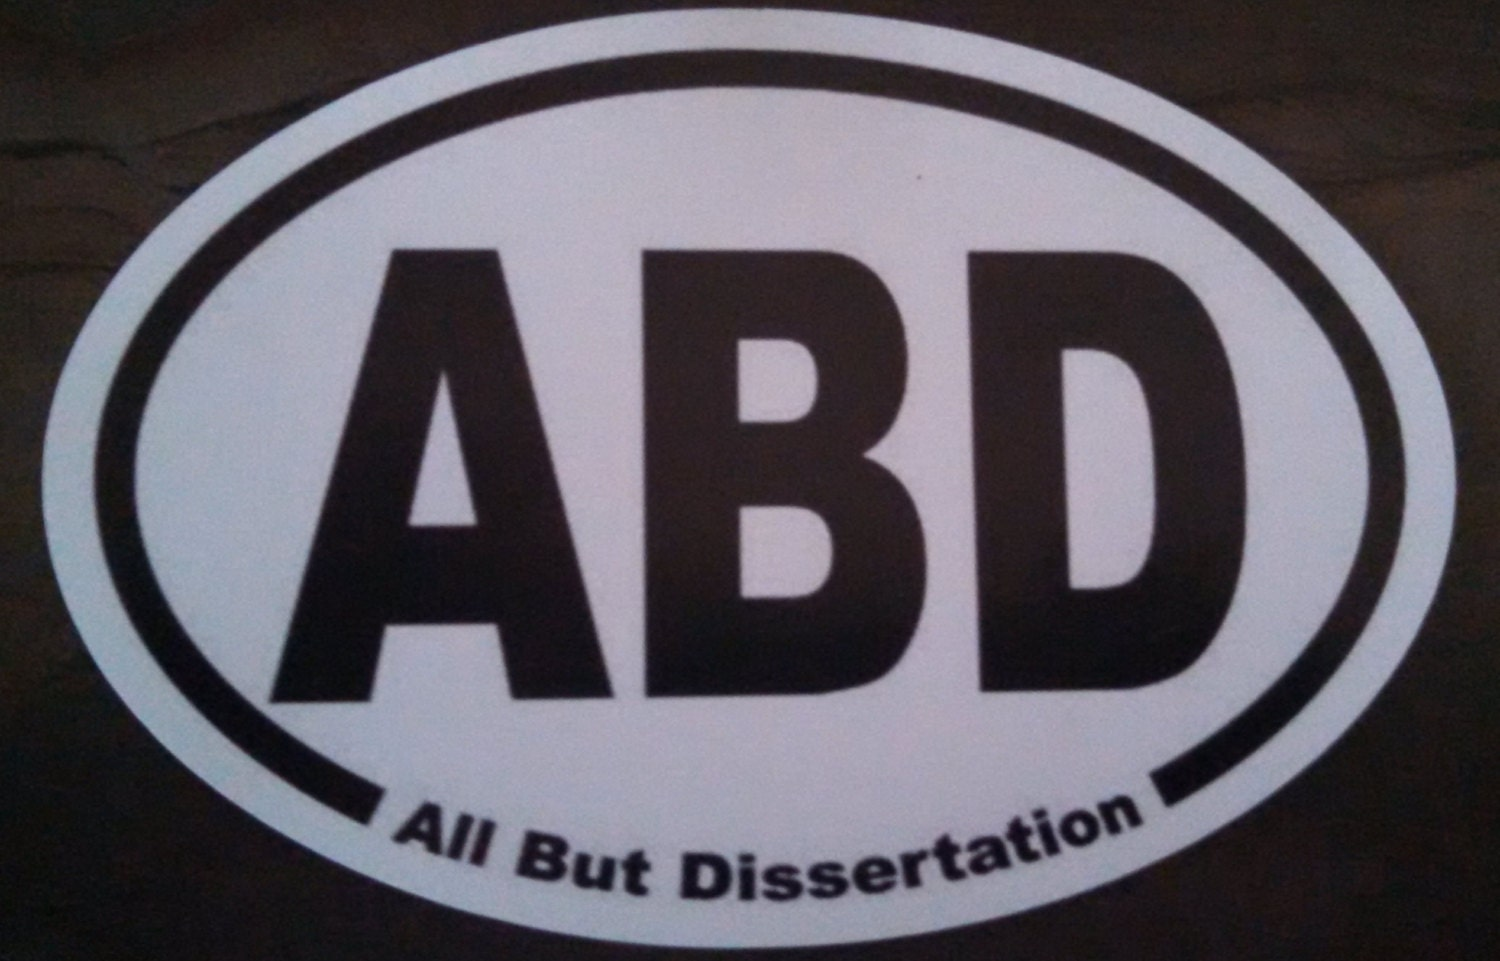 Dissertation or abd